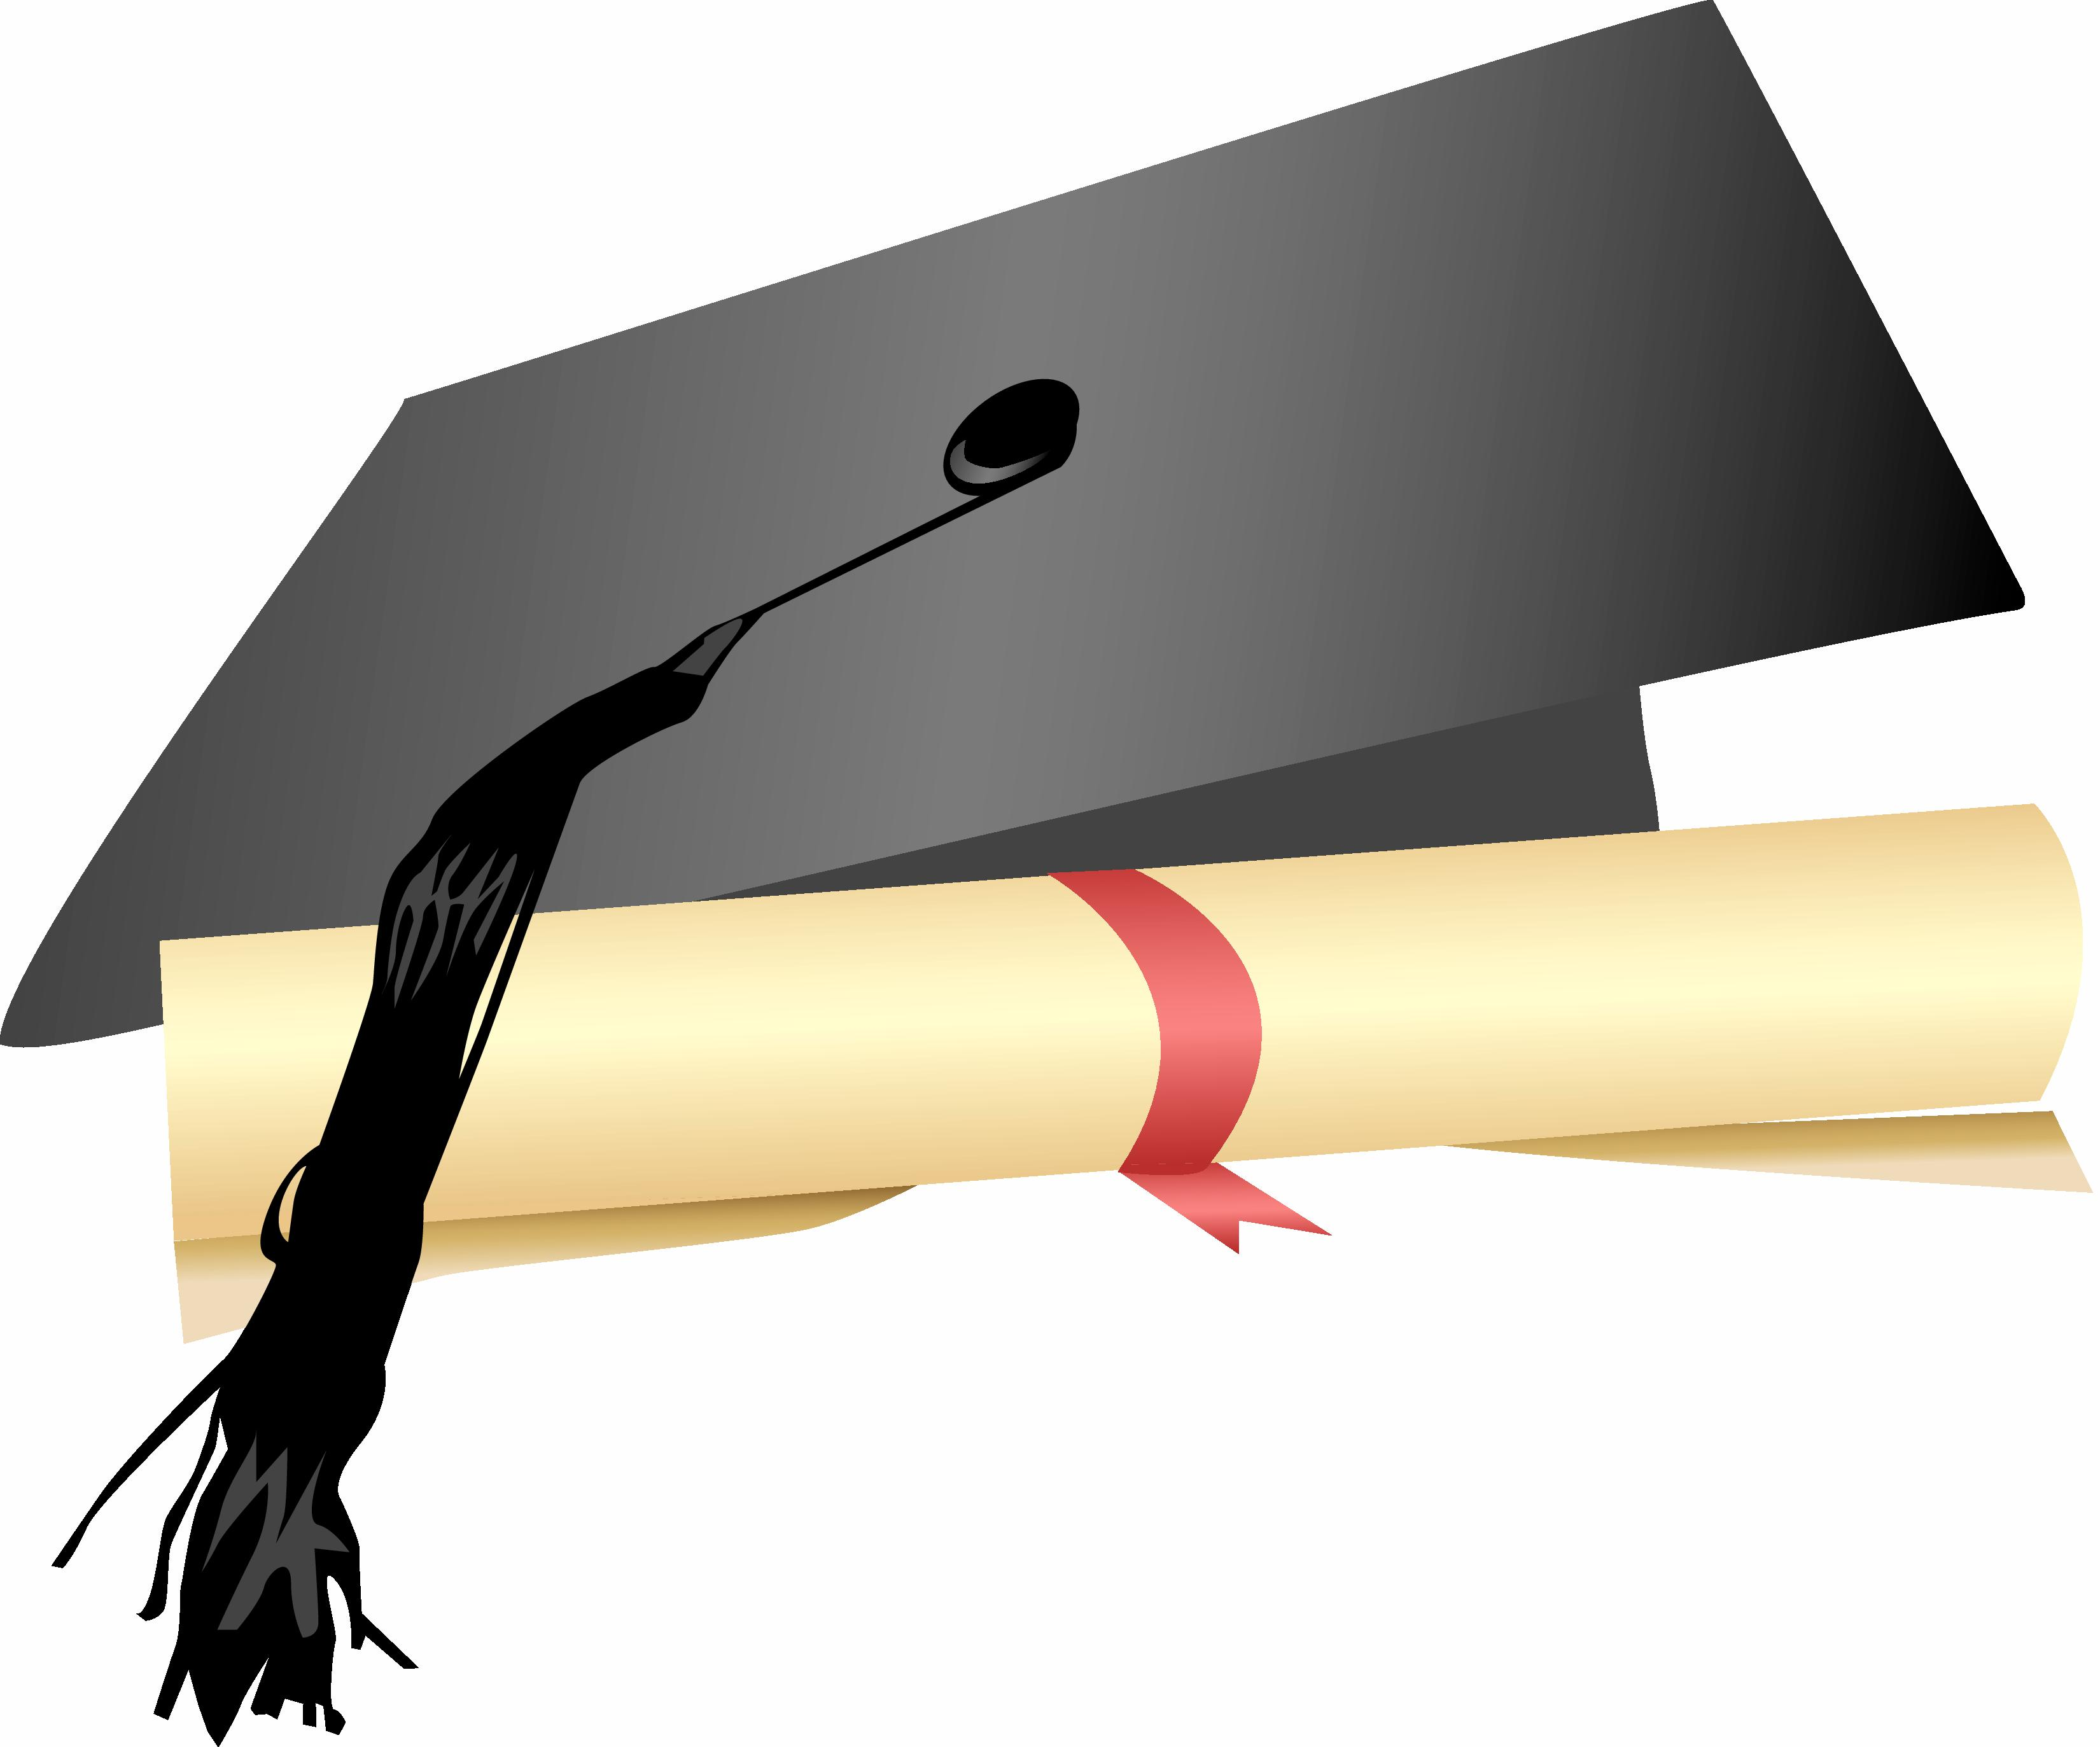 Diploma clipart convocation. Free graduation scroll download